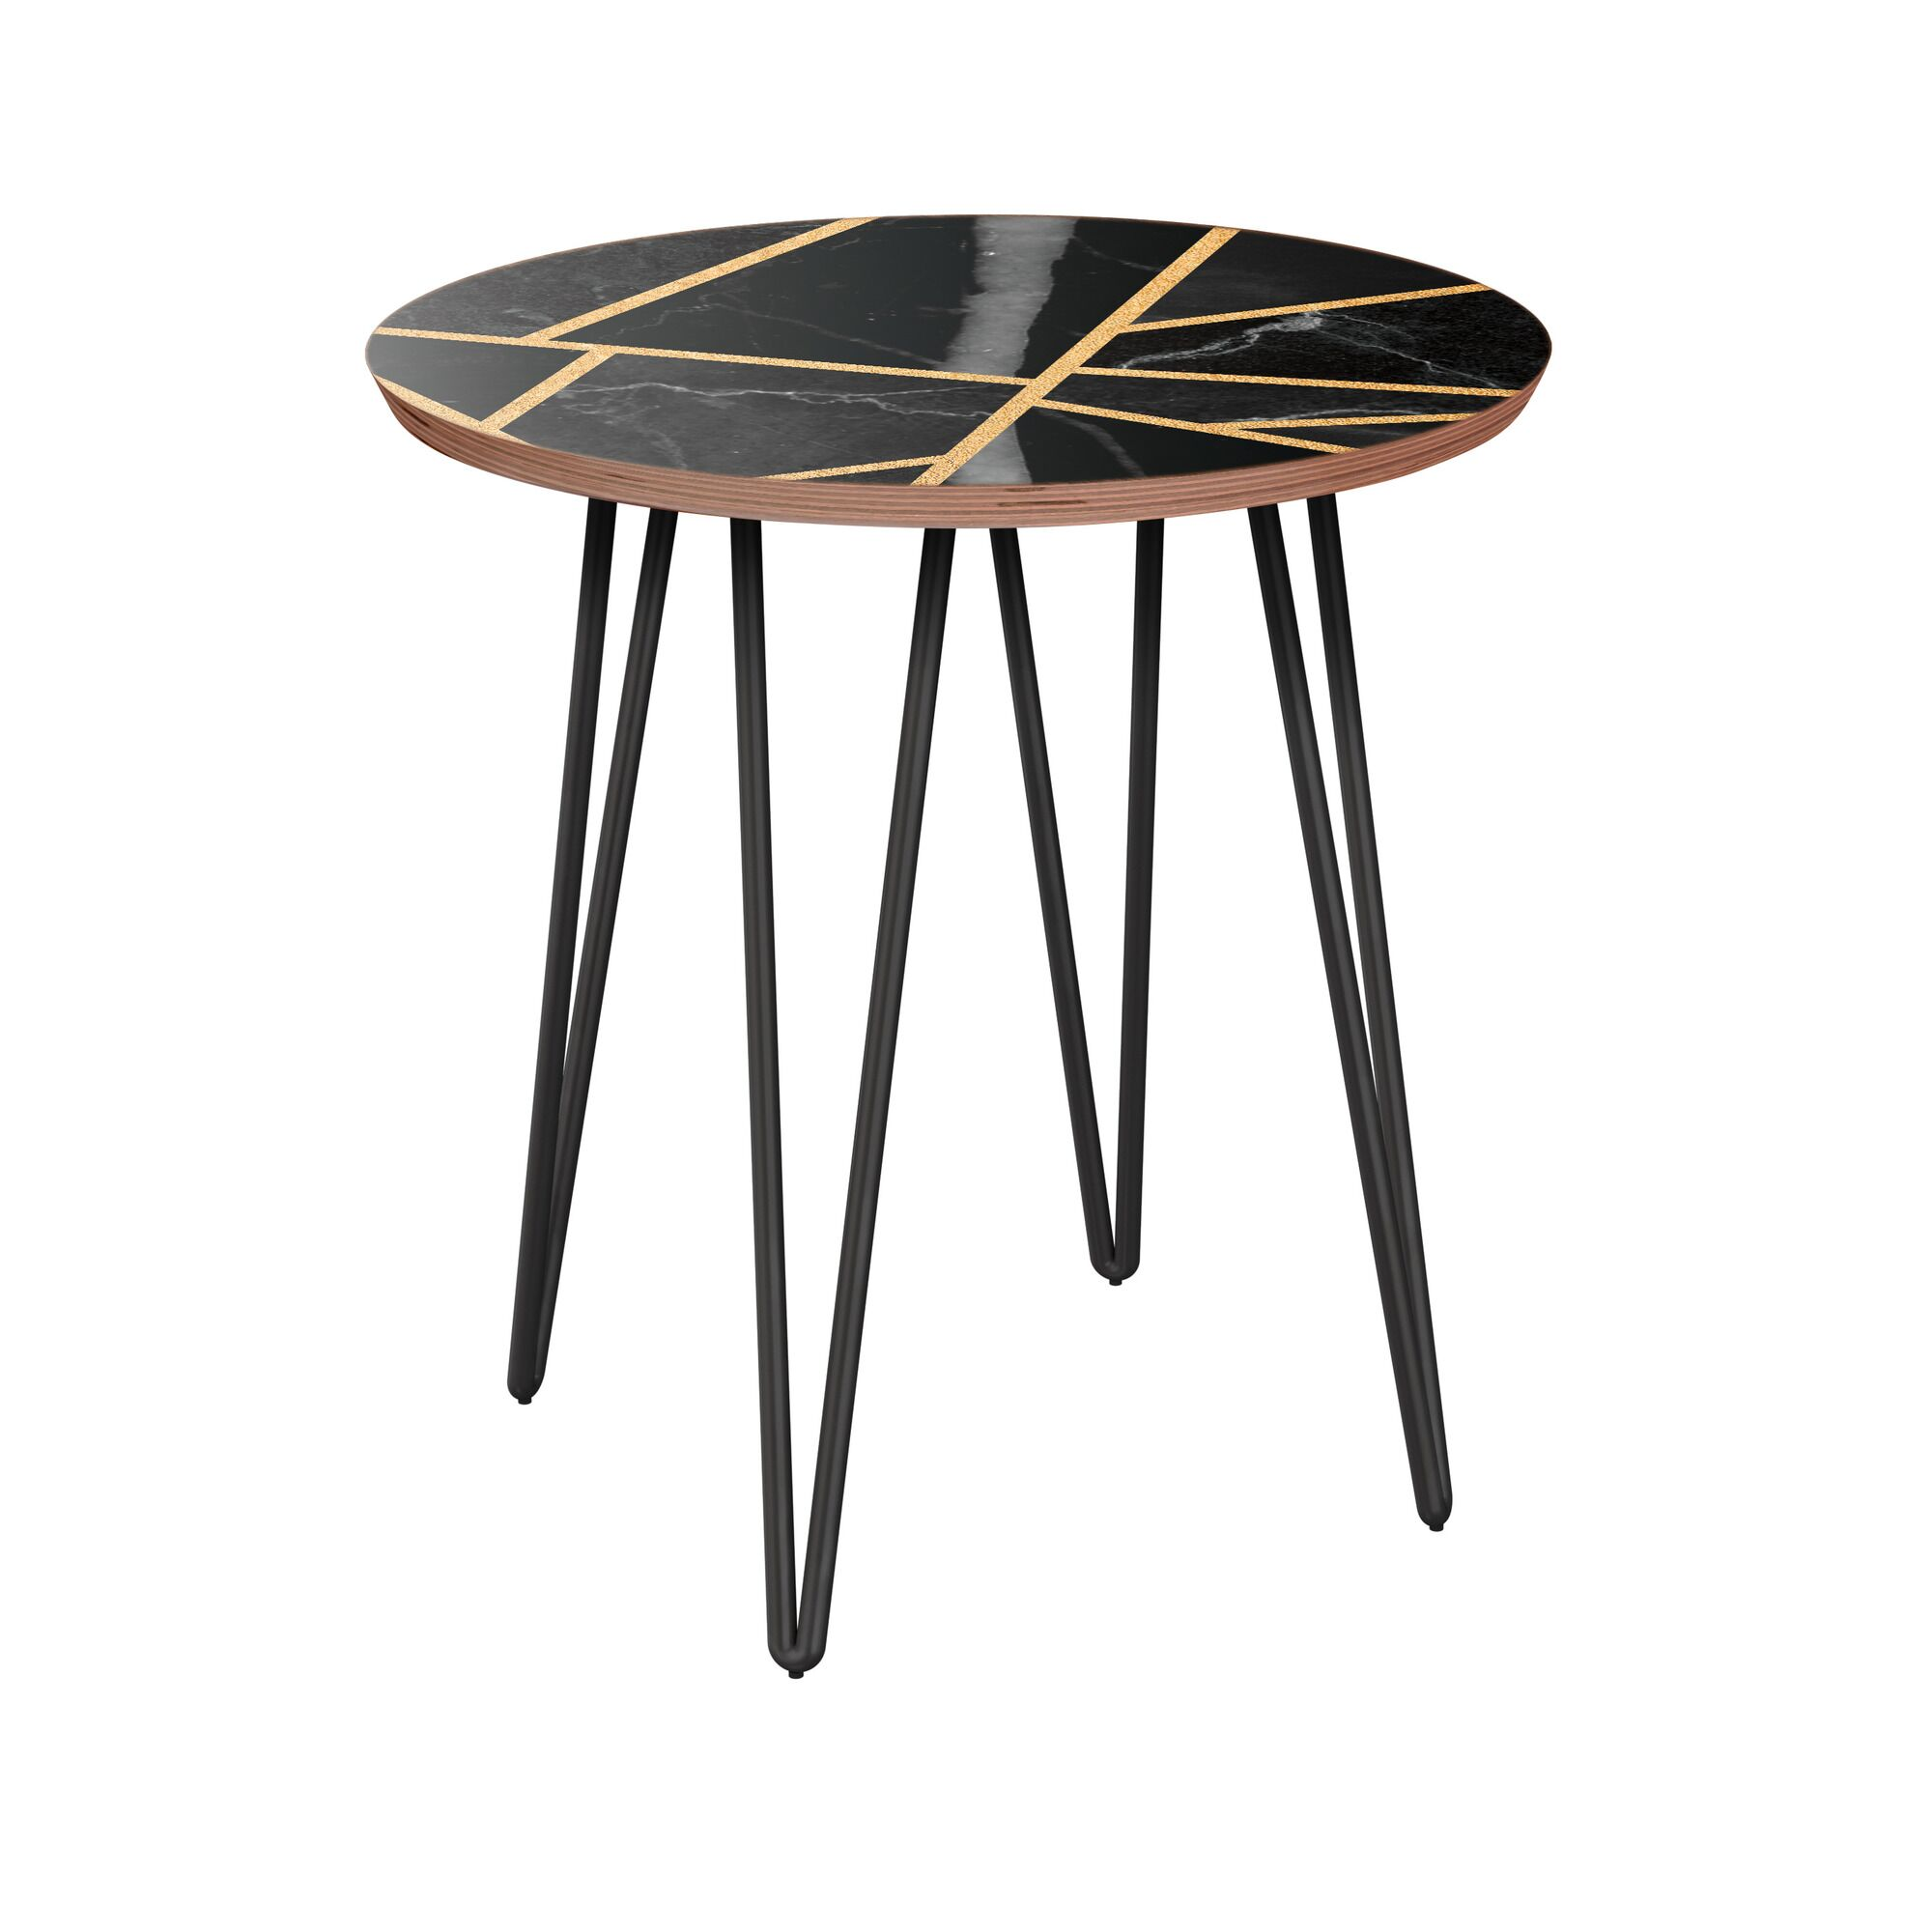 Rowe End Table Table Base Color: Black, Table Top Color: Walnut/Black